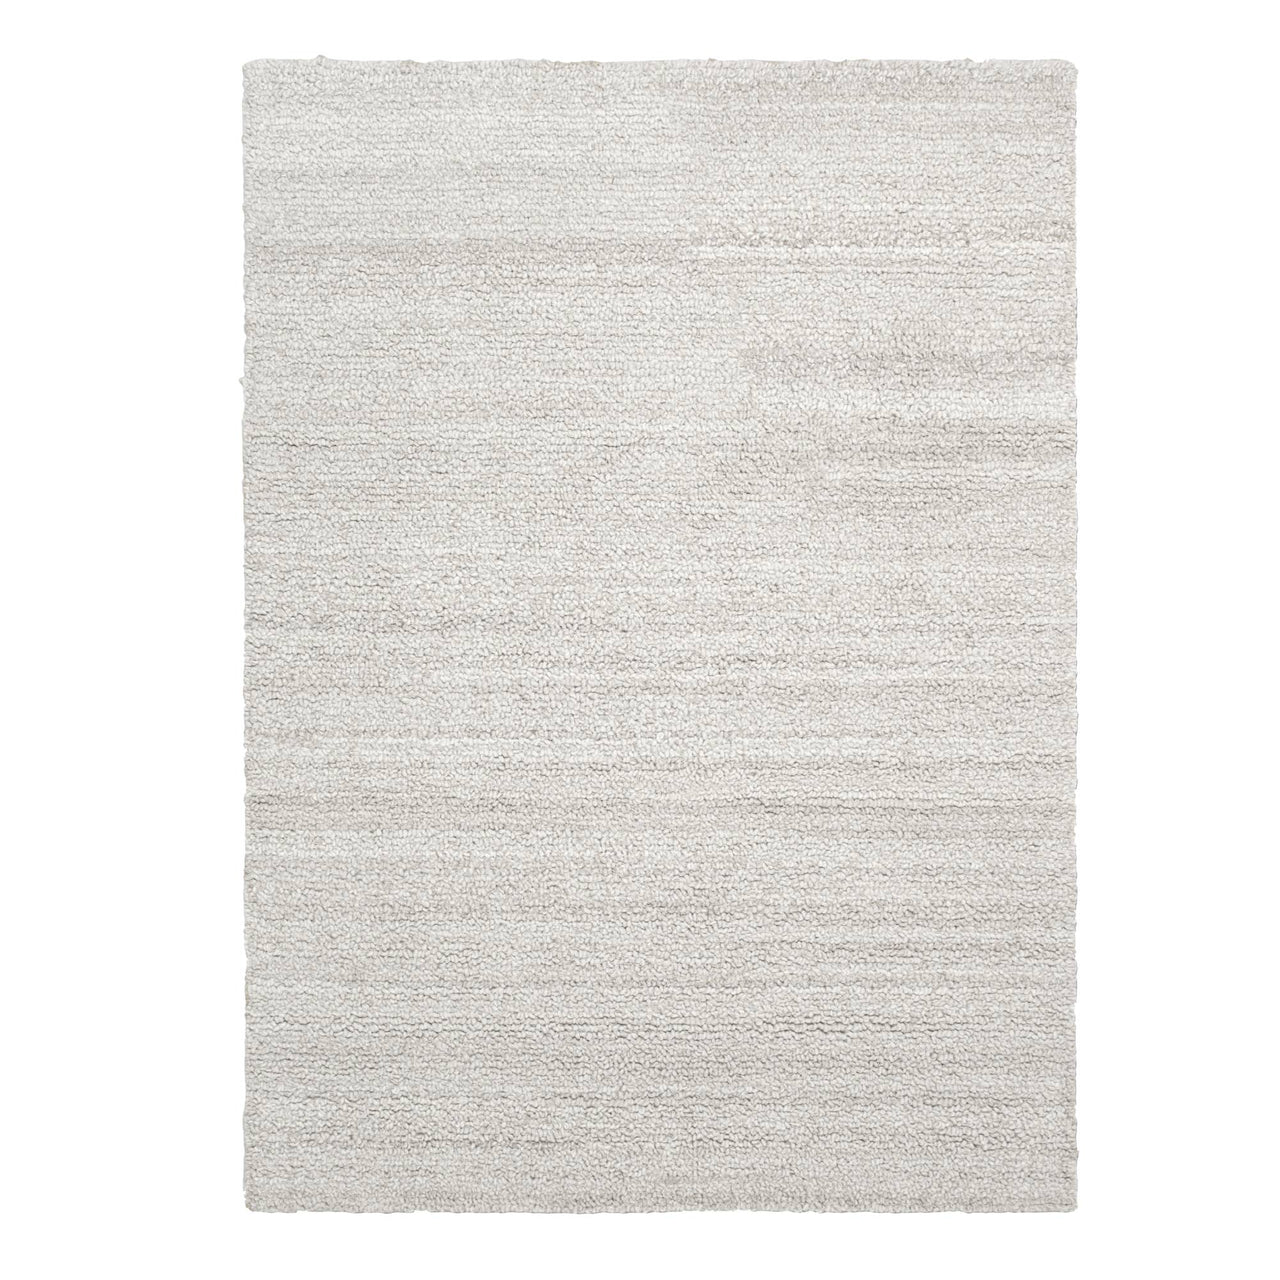 Ease Loop Rug: 200 x 300 mm